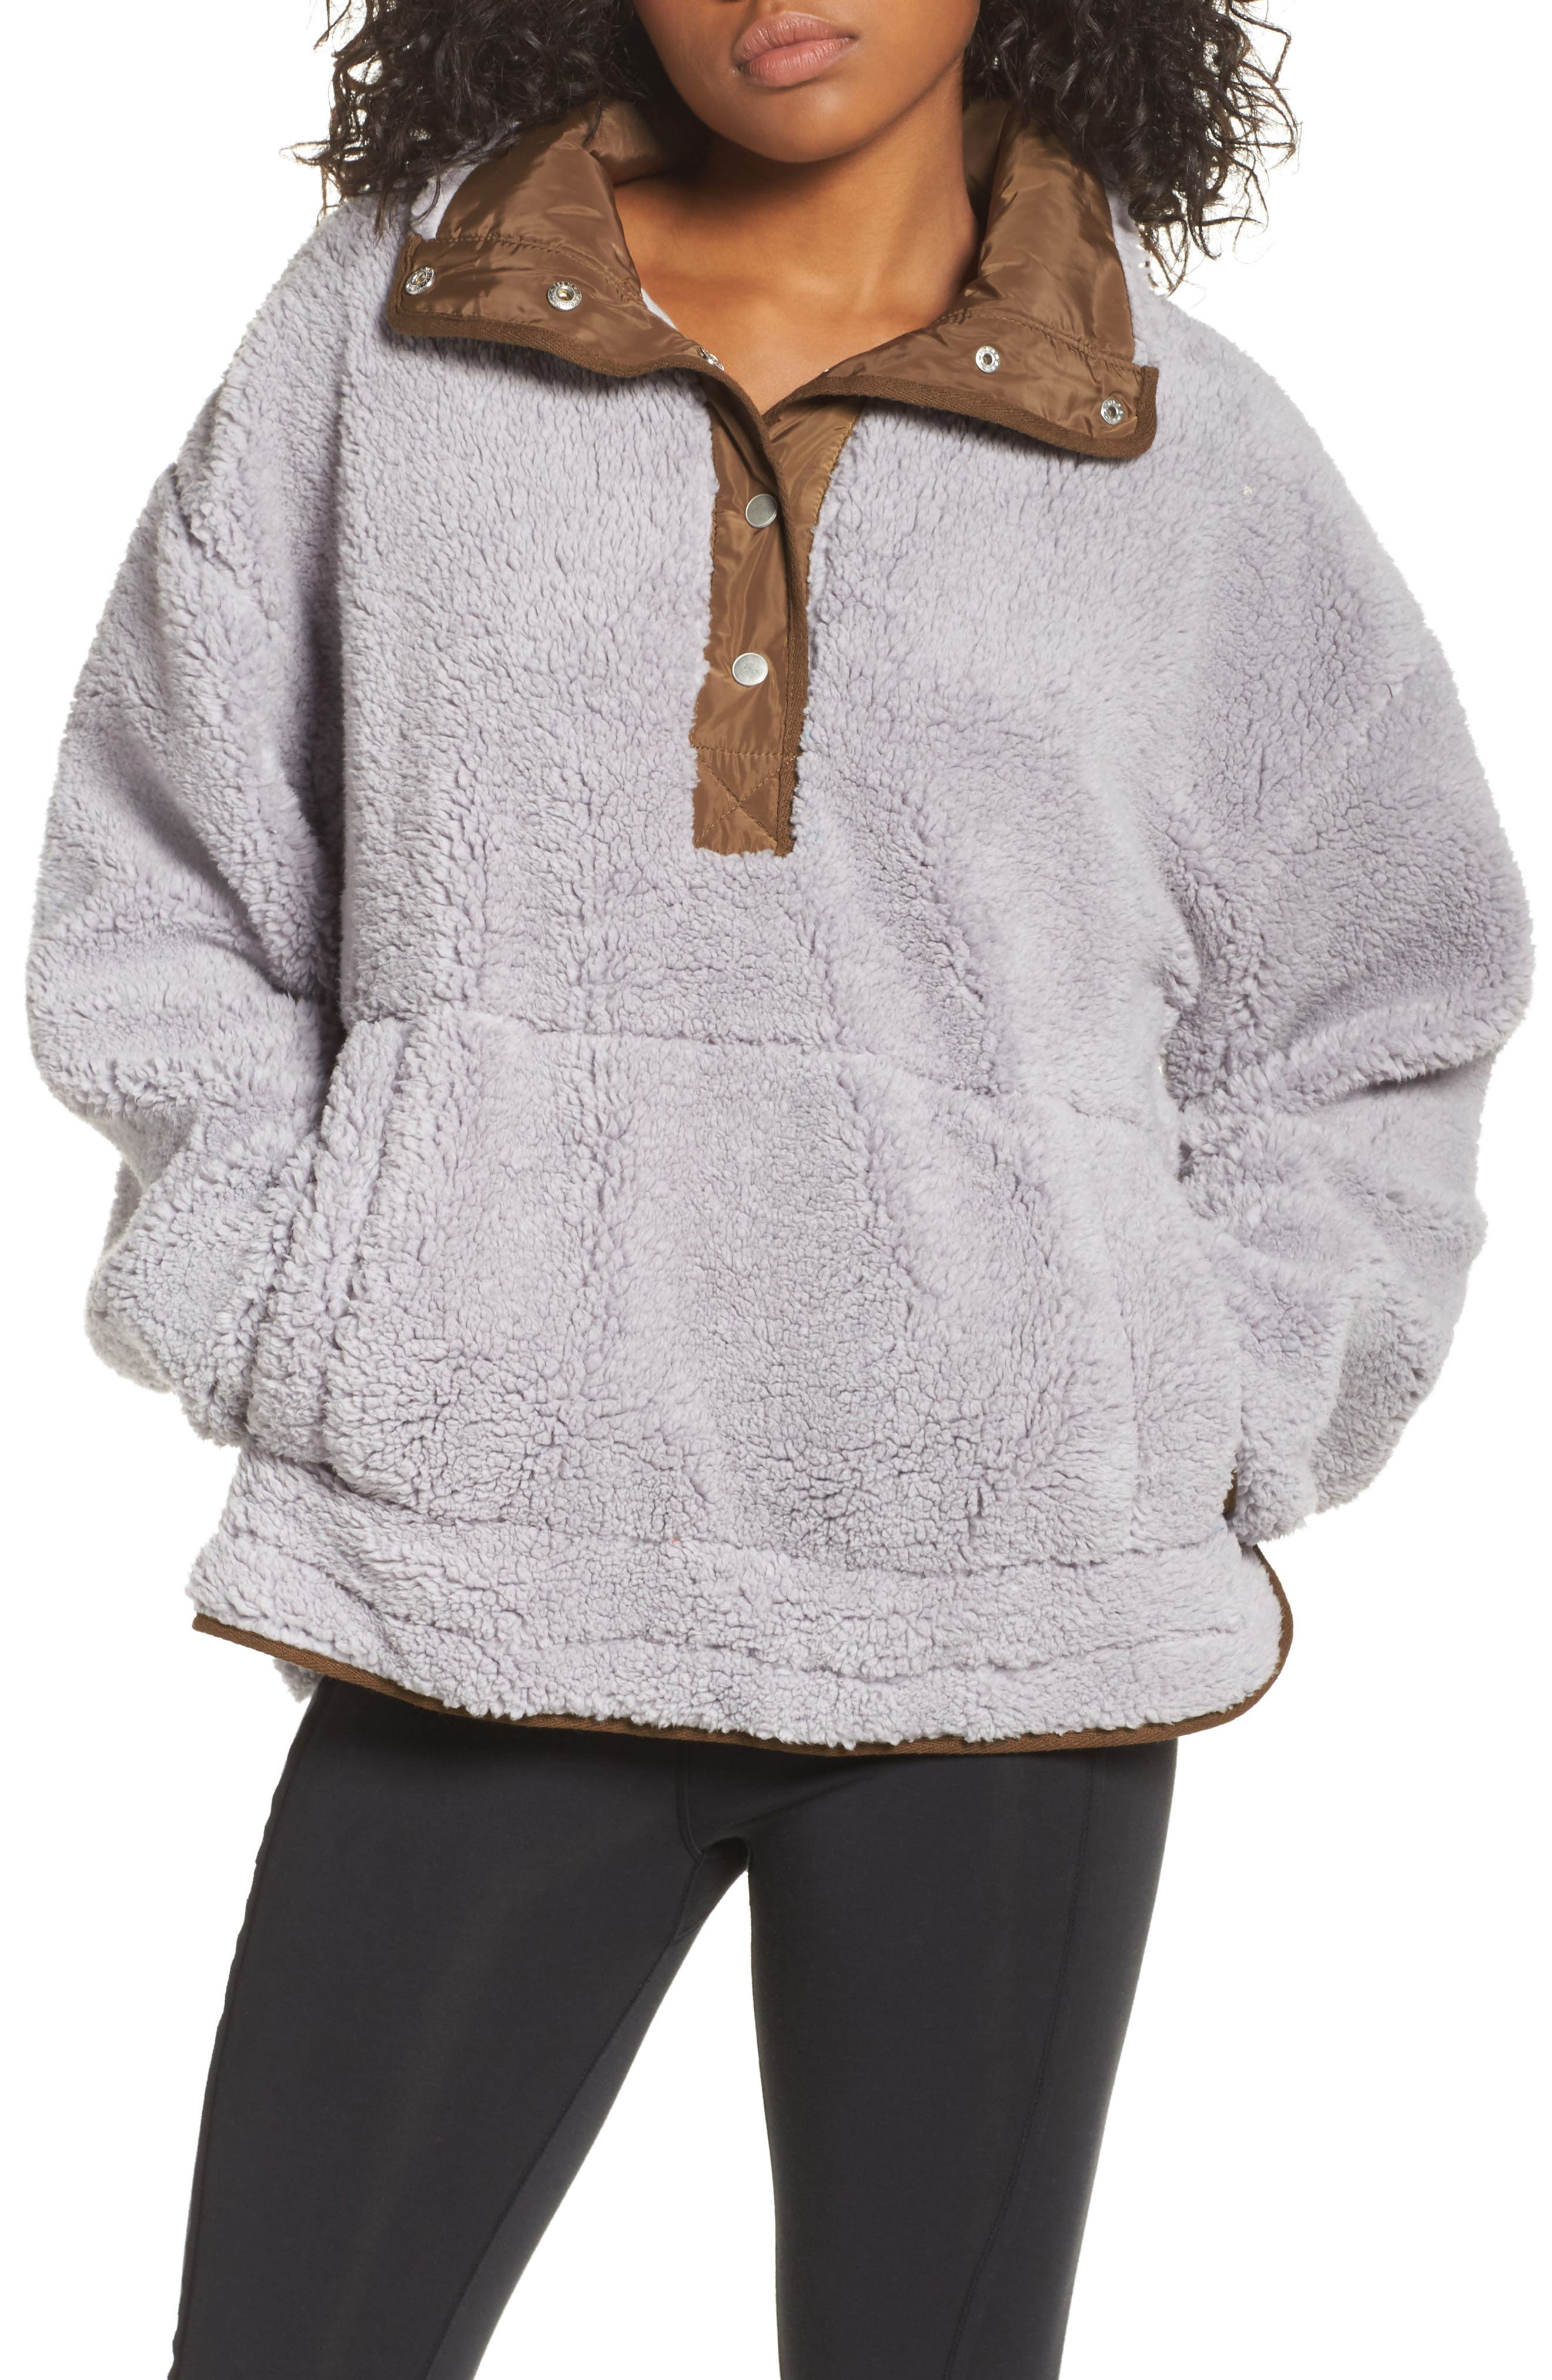 Free People Oh So Cozy Fleece Pullover,                             Main thumbnail 1, color,                             Grey